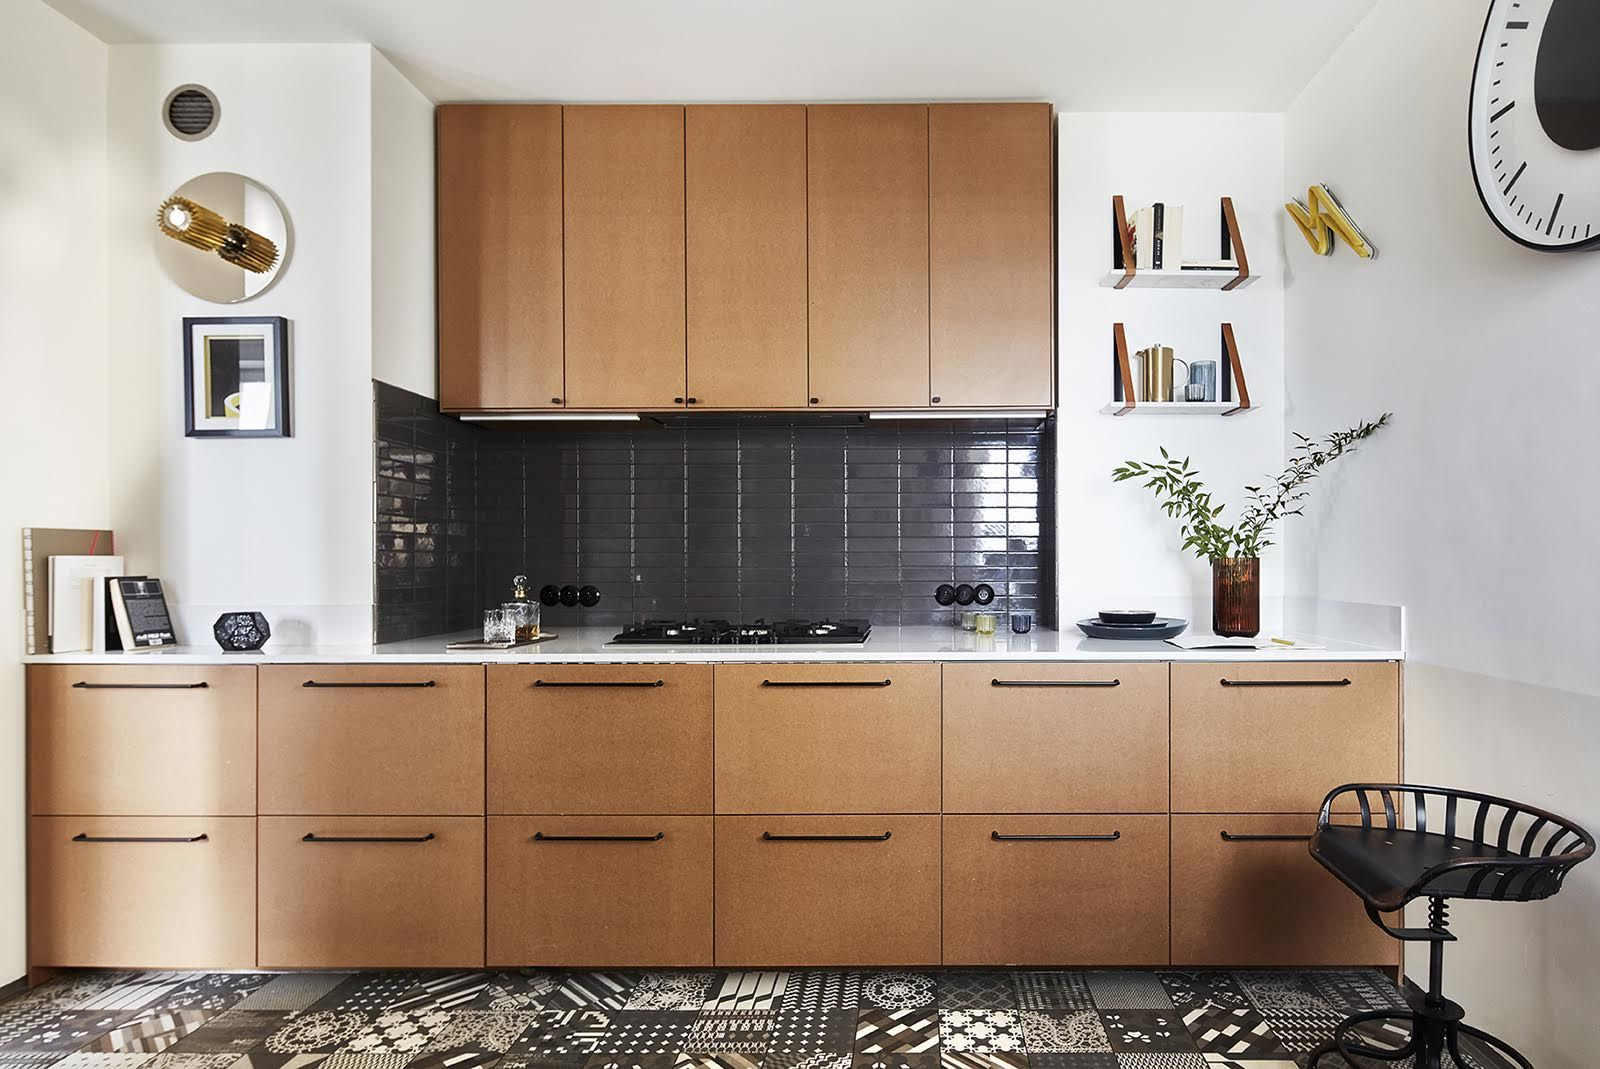 Our Raw Mdf Fronts On Ikea Metod Kitchen Designed By Mana For Living Kitchen Design Small Kitchen Kitchen